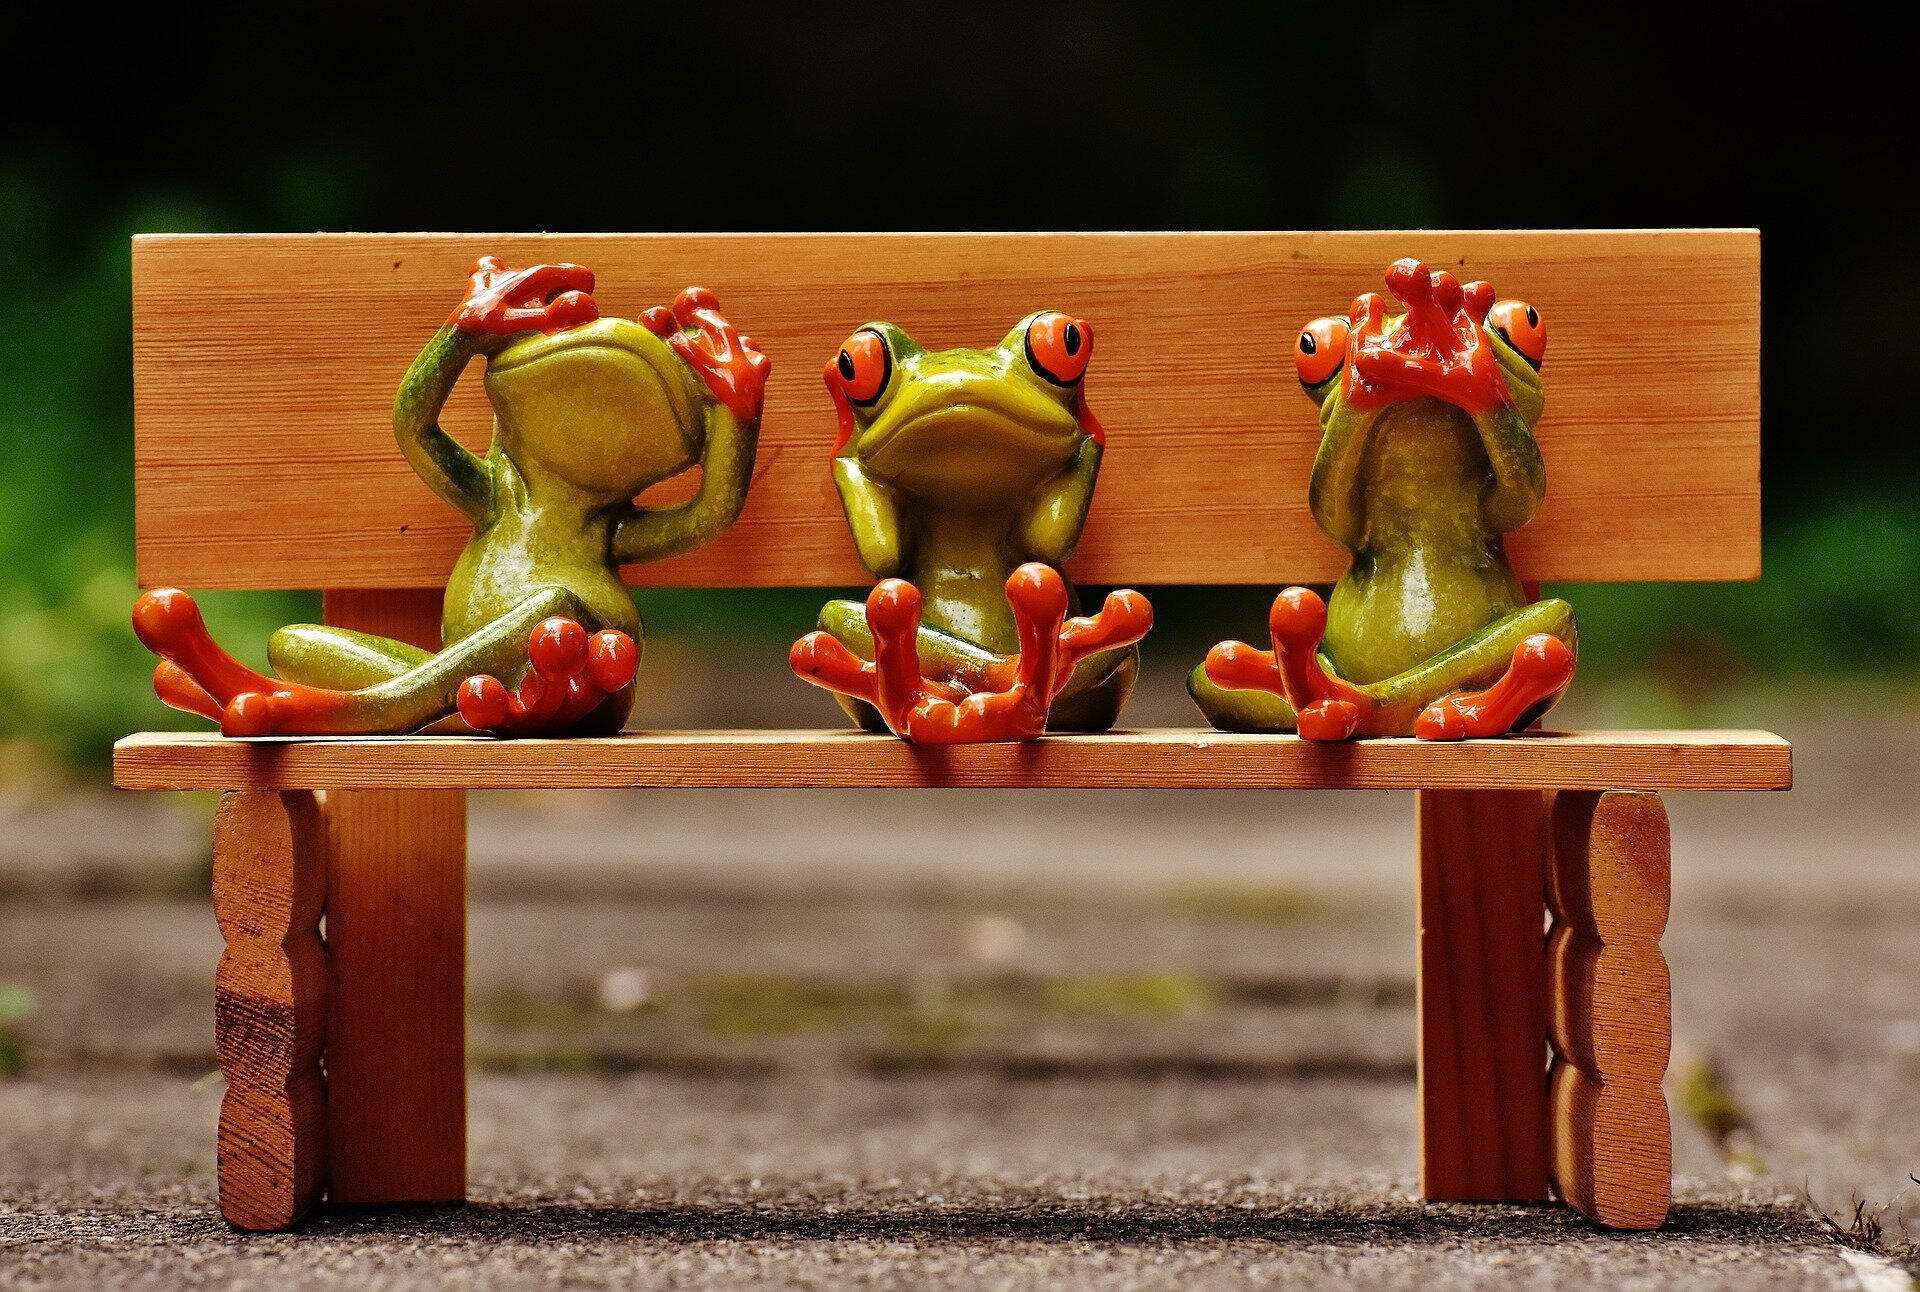 frogs-1610563_1920